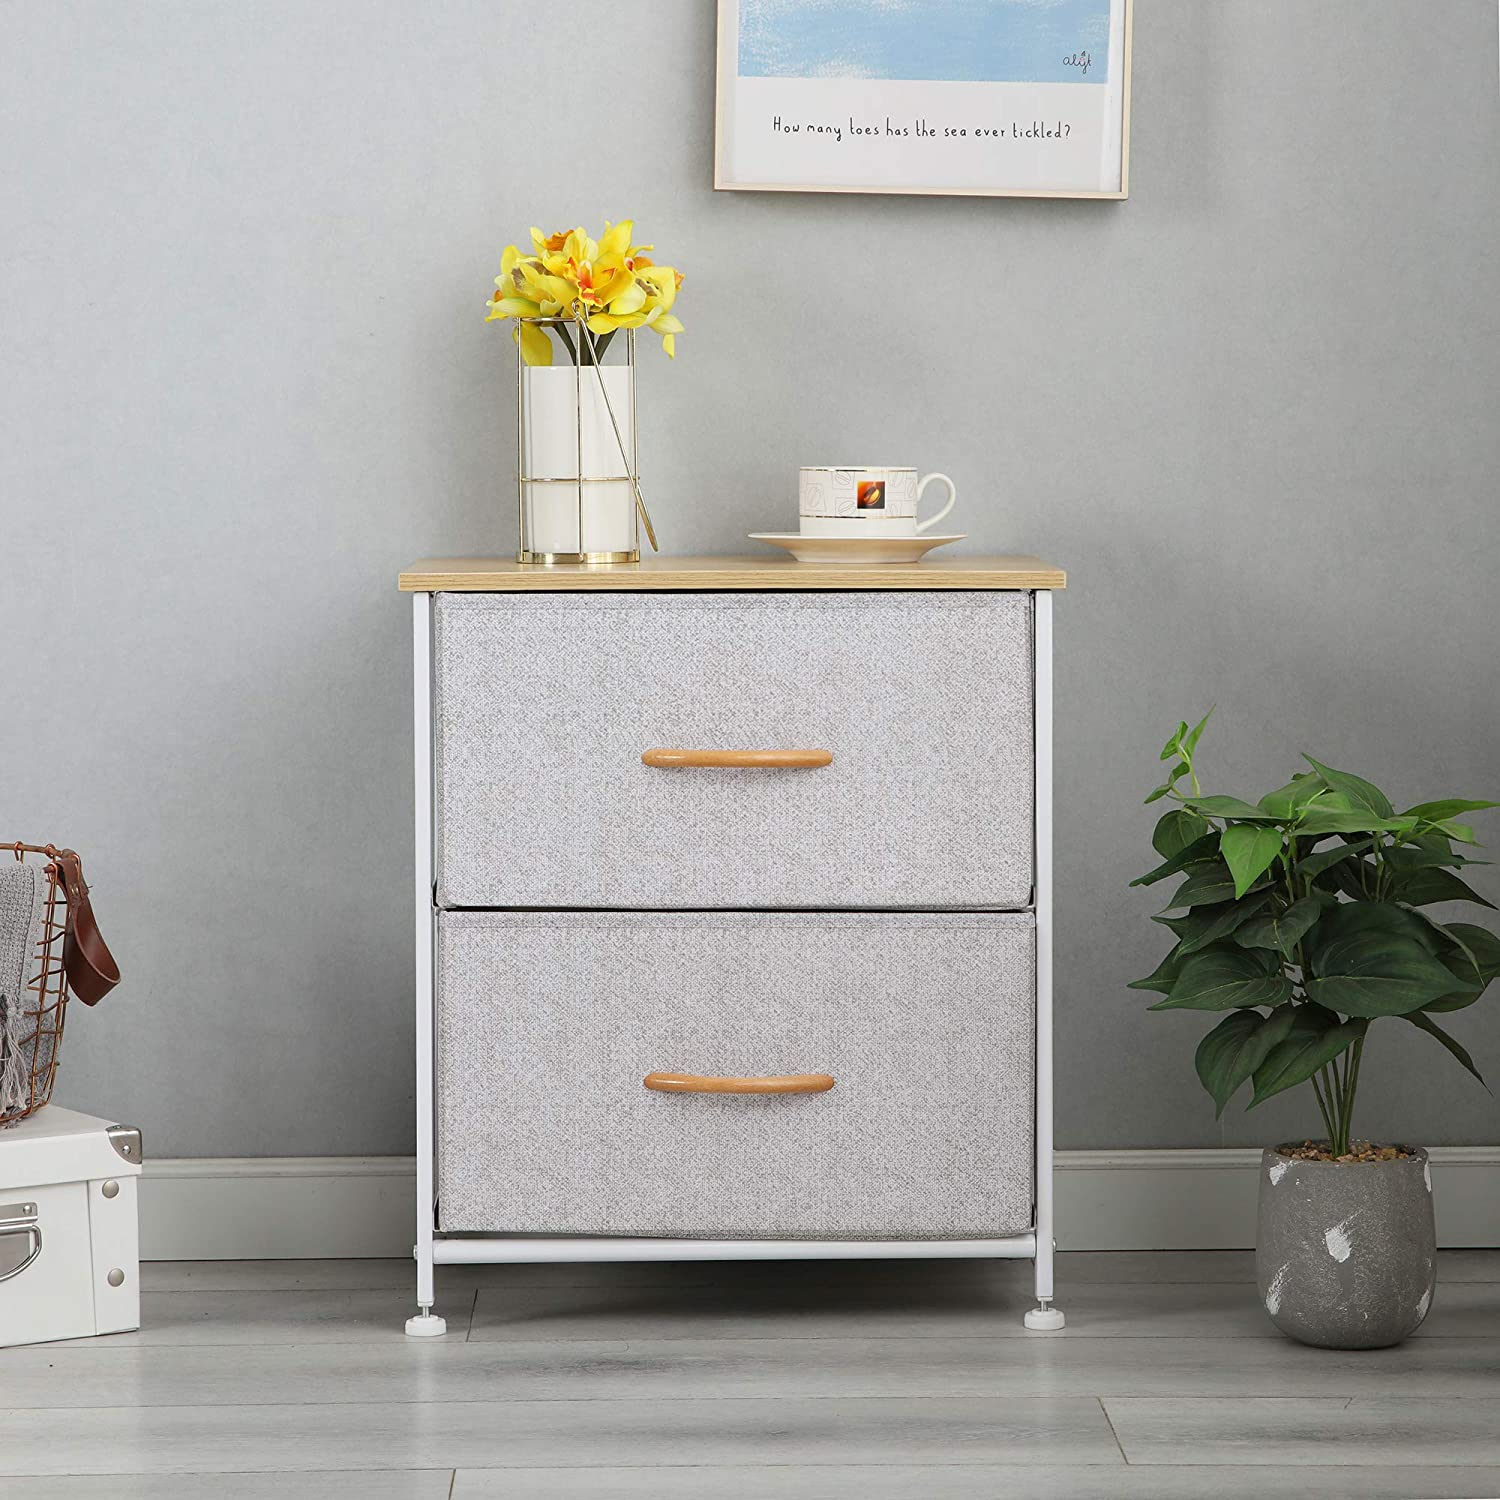 Gray McNeil 2 Drawers Fabric Dresser Vertical Storage Tower Organizer Unit for Bedroom Office Laundry Closet Entryway Hallway Nursery Room